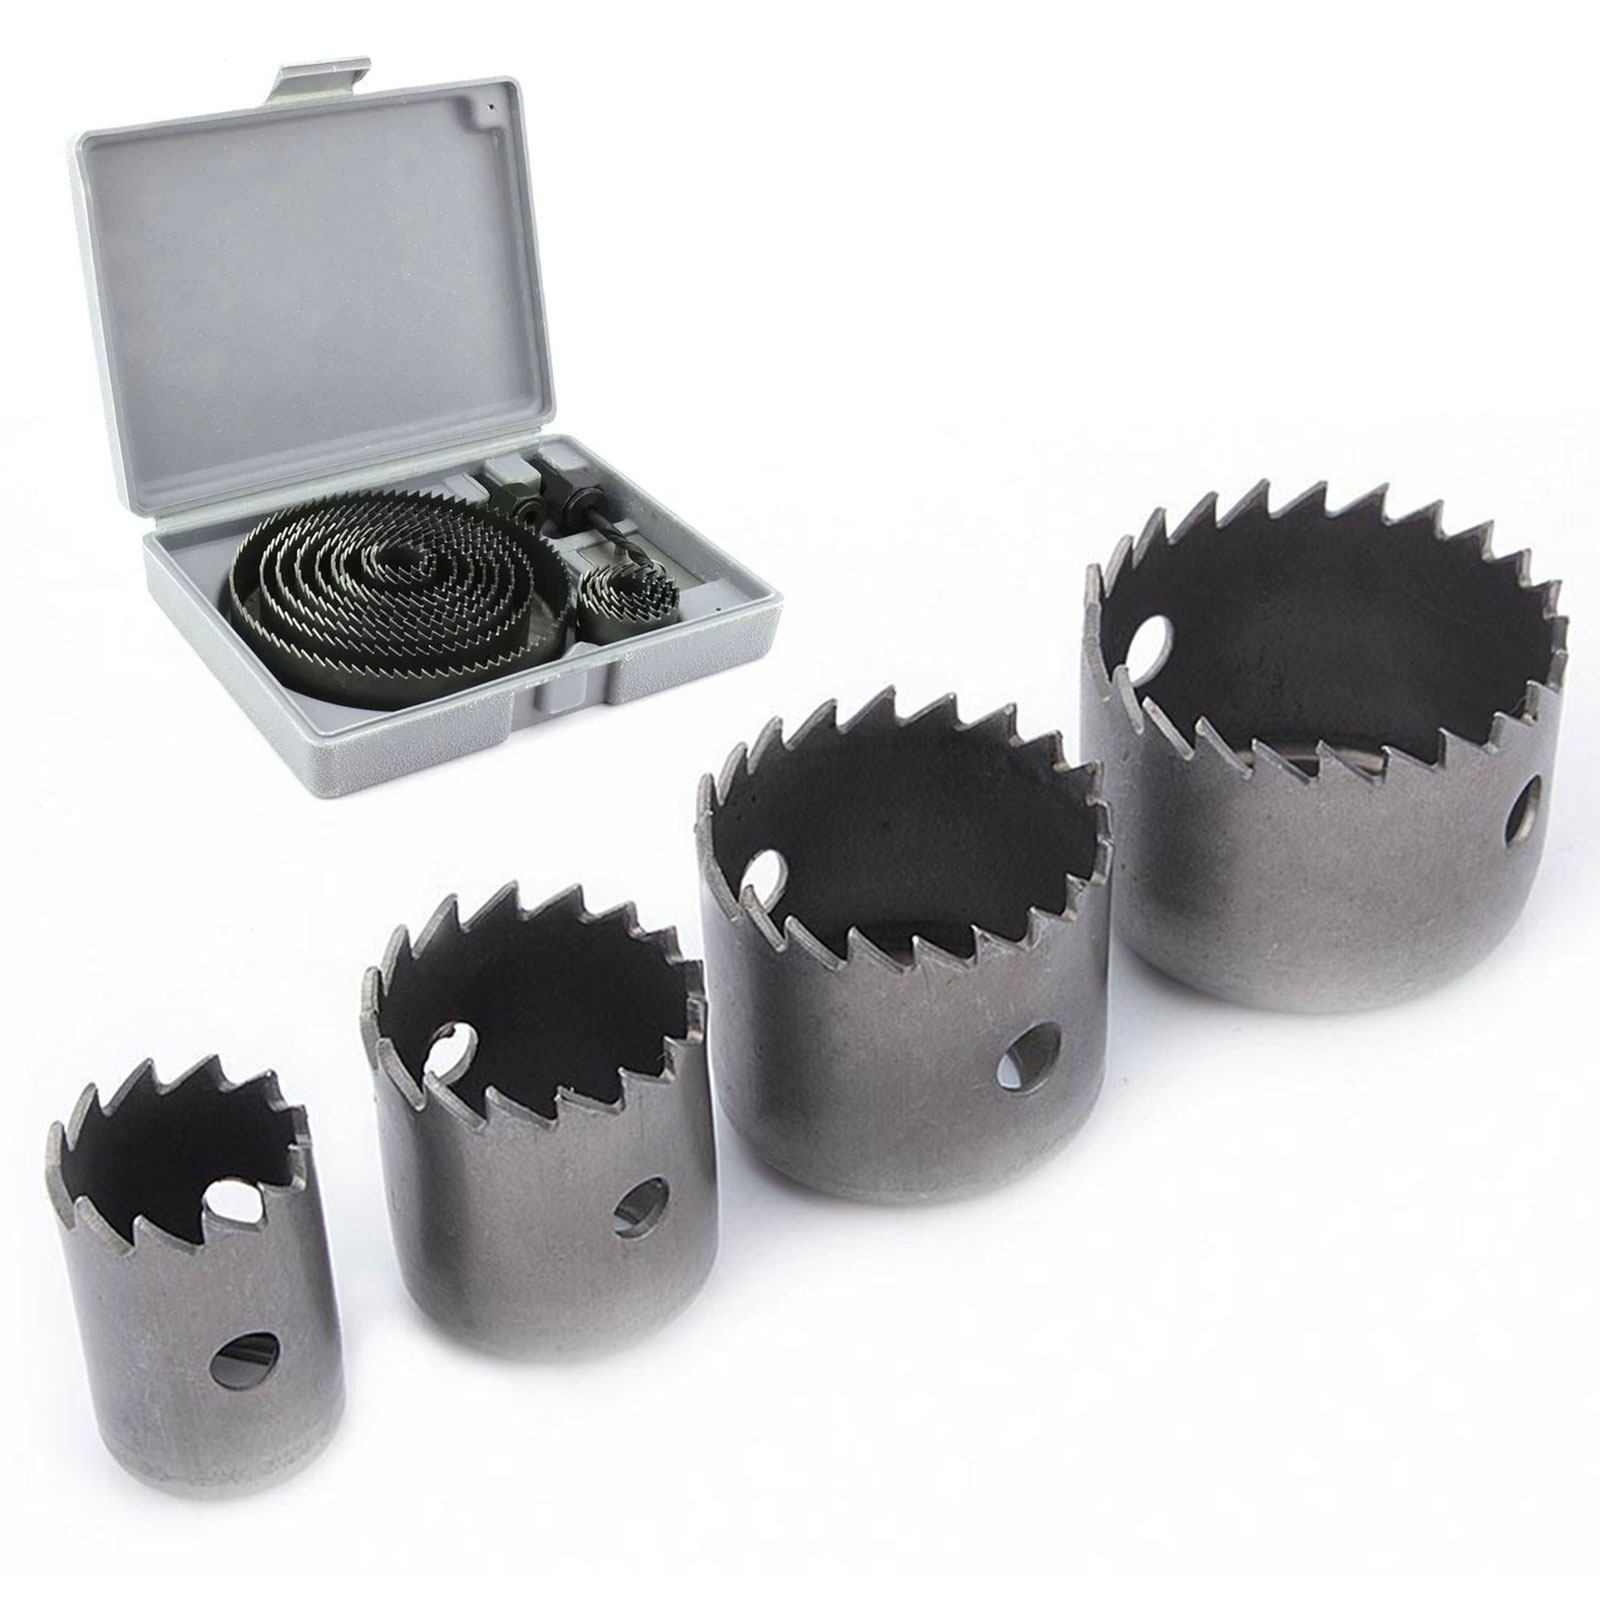 Hole Saw Cutting Set Kit Drilling Tool Wood Metal Cutter 19-127mm High Quality Mandrels Saws Core Drill Bits Woodworking